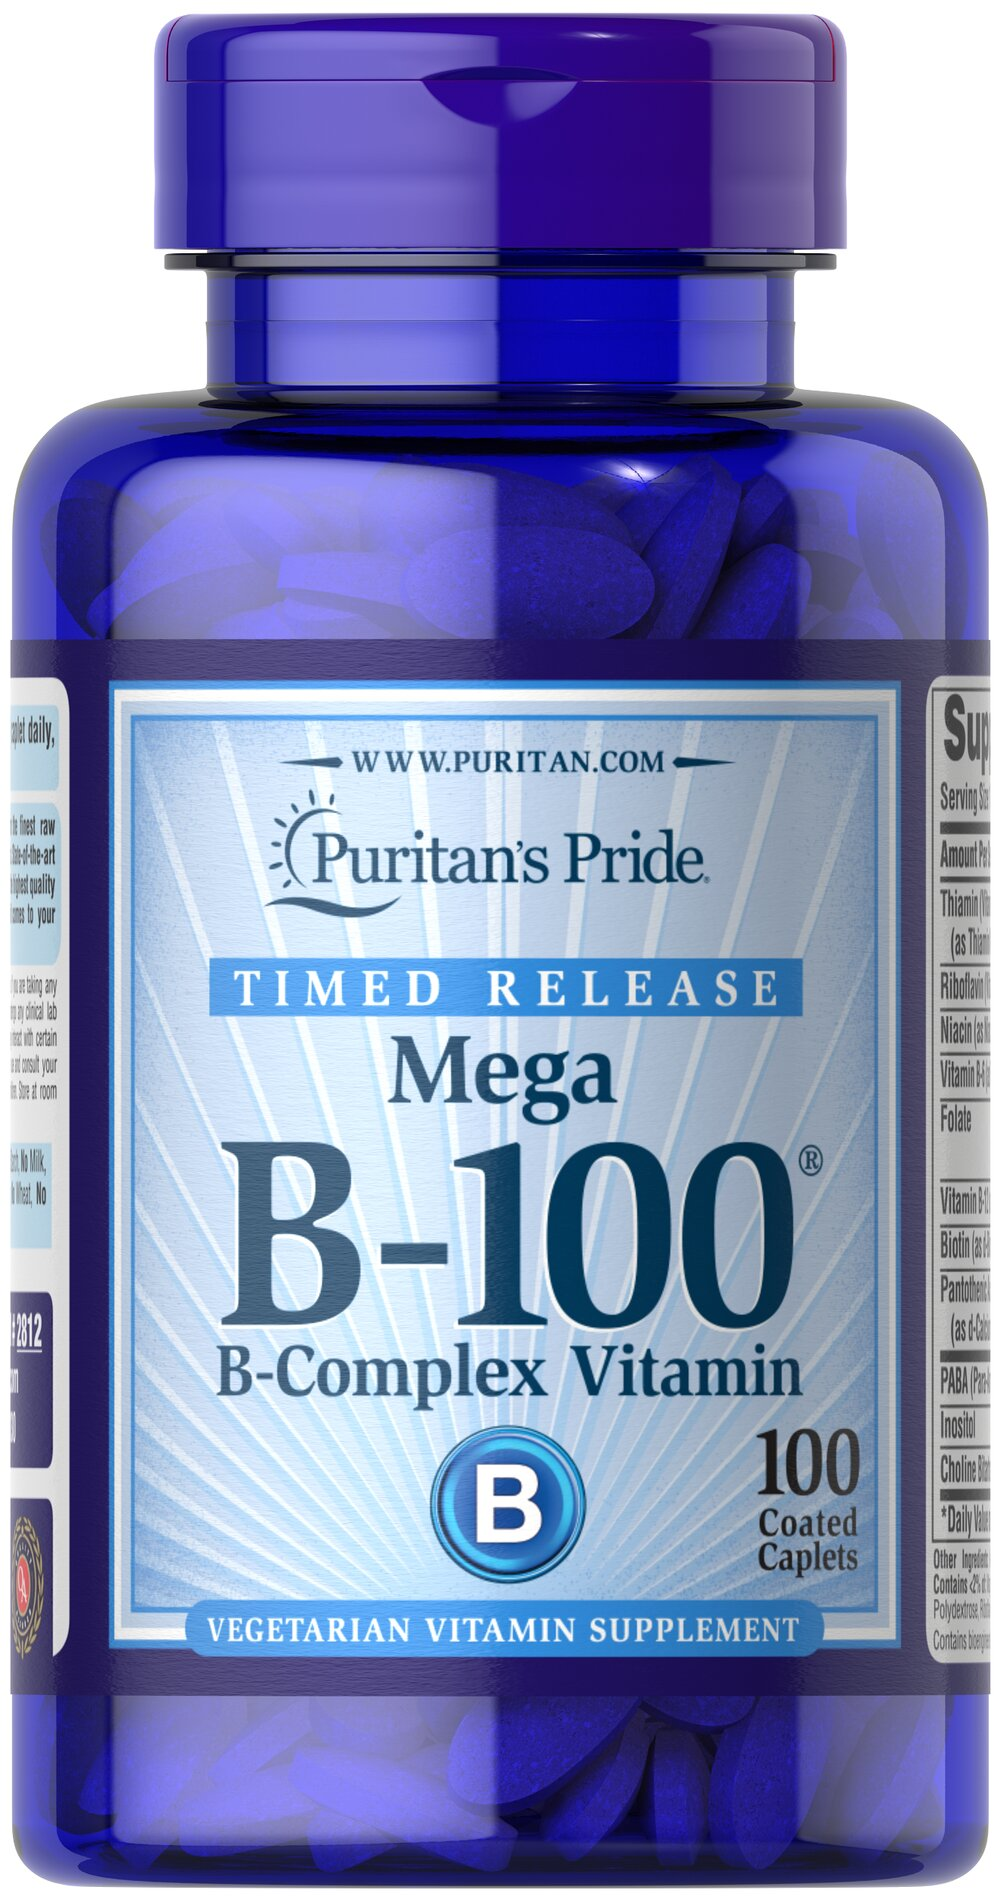 Vitamin B-100® Complex Timed Release <p>Each nutrient in the Vitamin B-100® Complex performs a unique role in maintaining proper metabolic functioning and is essential for well being.** When taken together in a complex formula, the B Vitamins help to maintain the health of the nervous system, skin, eyes and hair.** This product is specially formulated to provide a gradual release of vitamins over a prolonged period of time.</p>  100 Tablets 100 mg $29.49